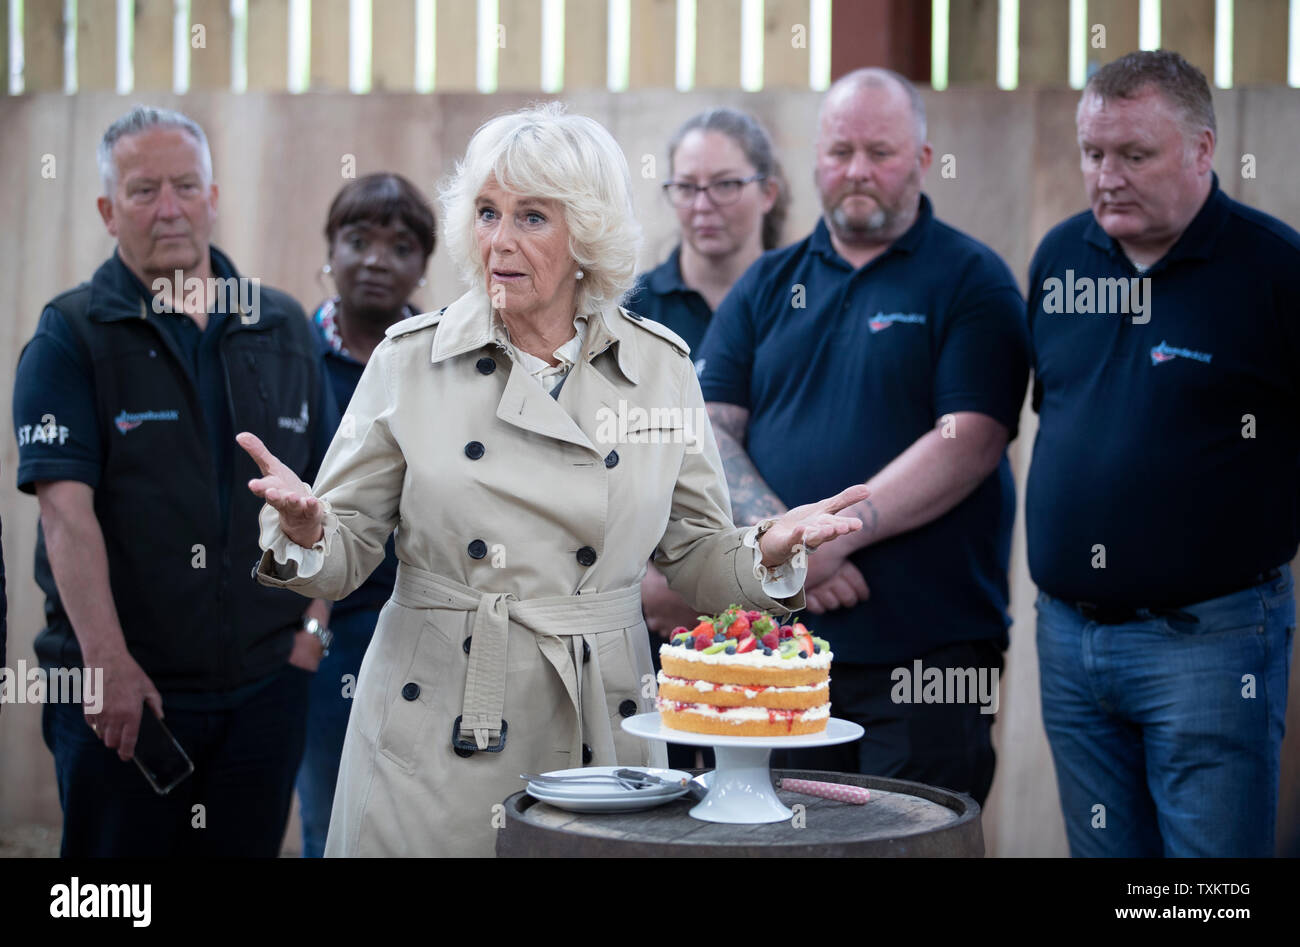 The Duchess of Cornwall, who is known as the Duchess of Rothesay when in Scotland, makes a speech after cutting a special commemorative cake during a visit to HorseBack UK, in South Ferrar, Aboyne. The charity which supports veterans and children is celebrating its 10th birthday. - Stock Image